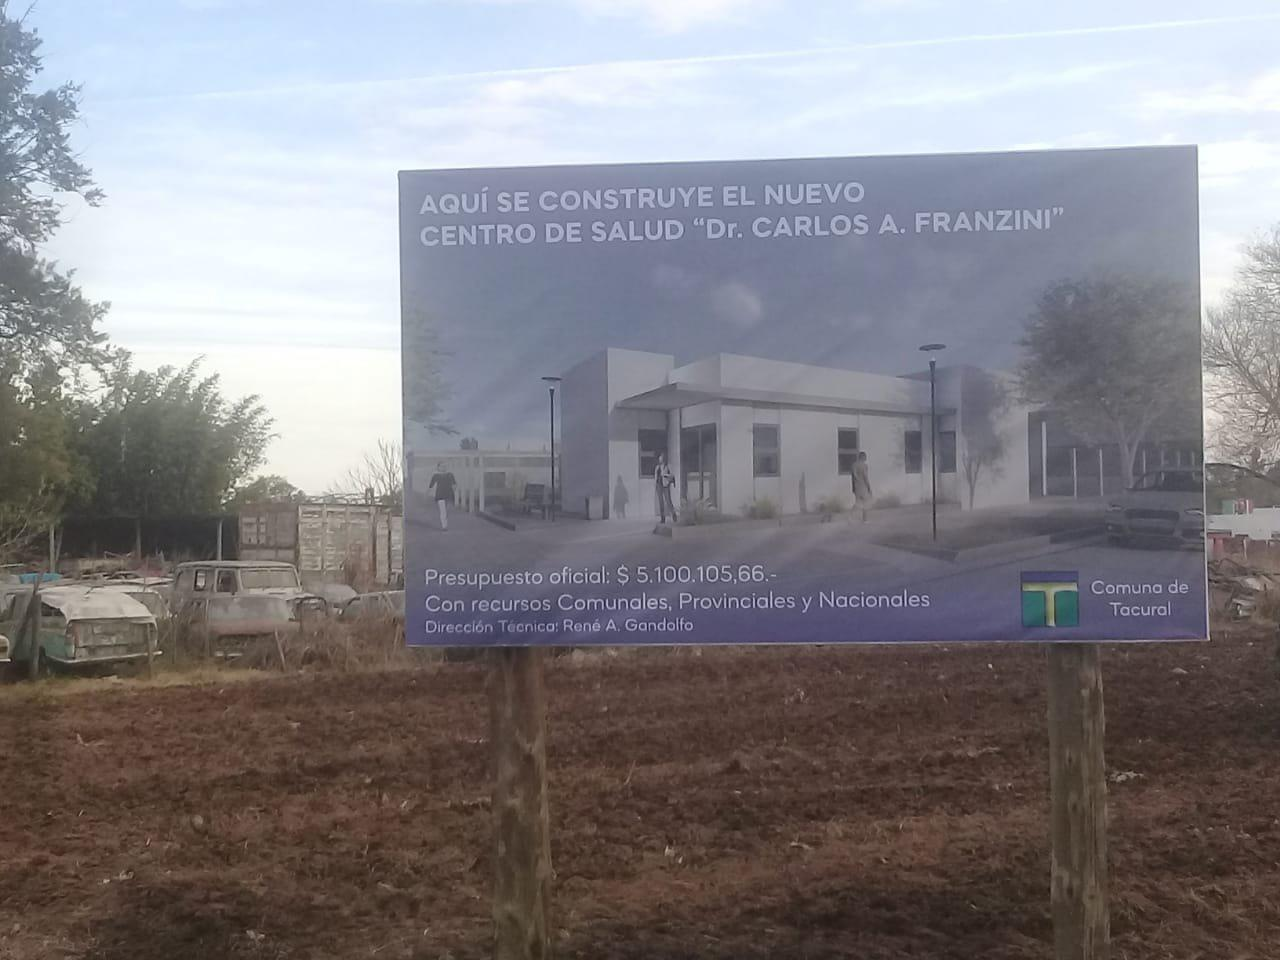 pag19arribatacuralcentrodesalud